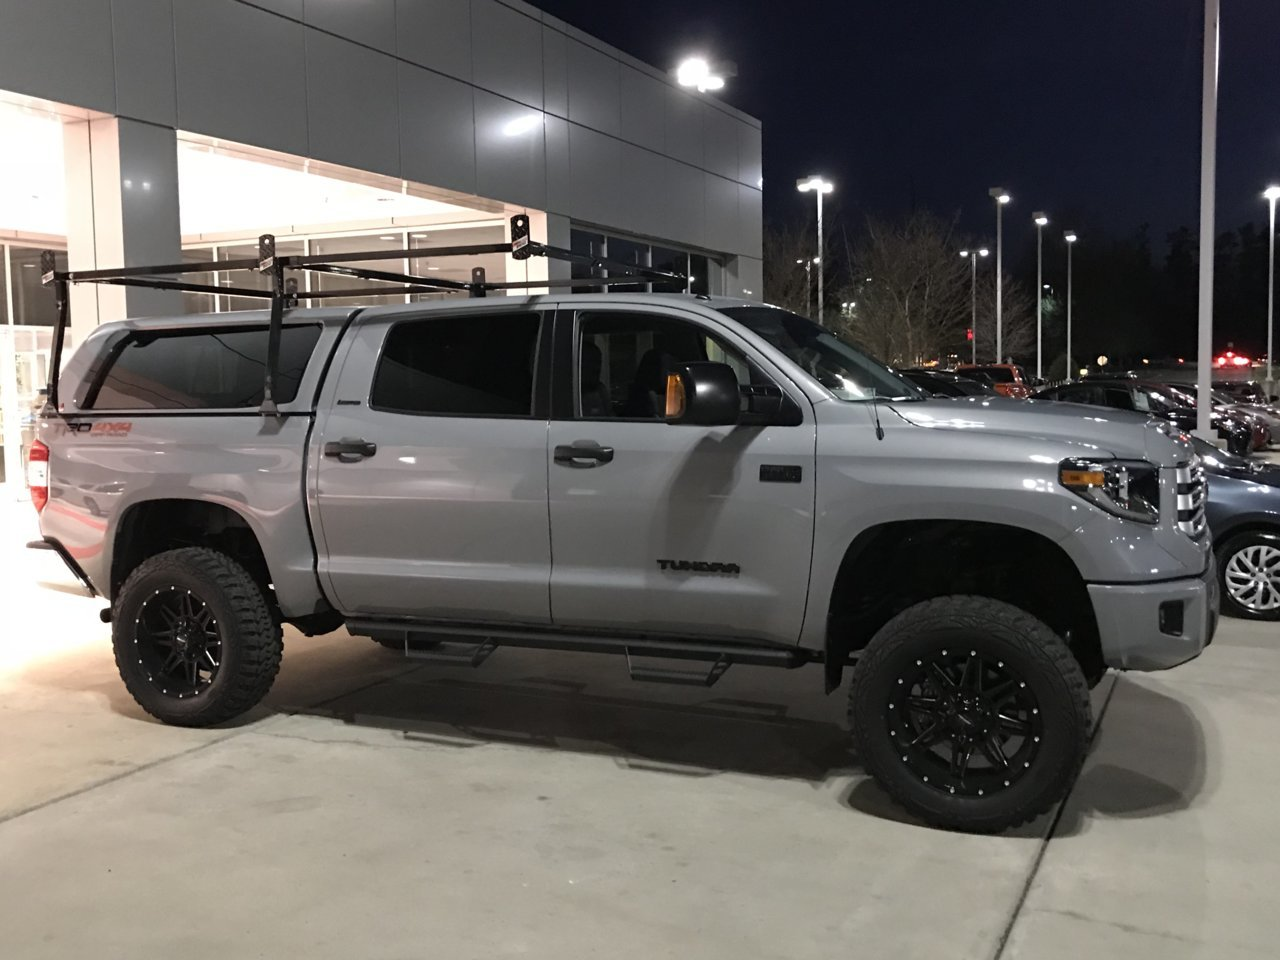 Suggestions for airbag suspension systems | Toyota Tundra Forum